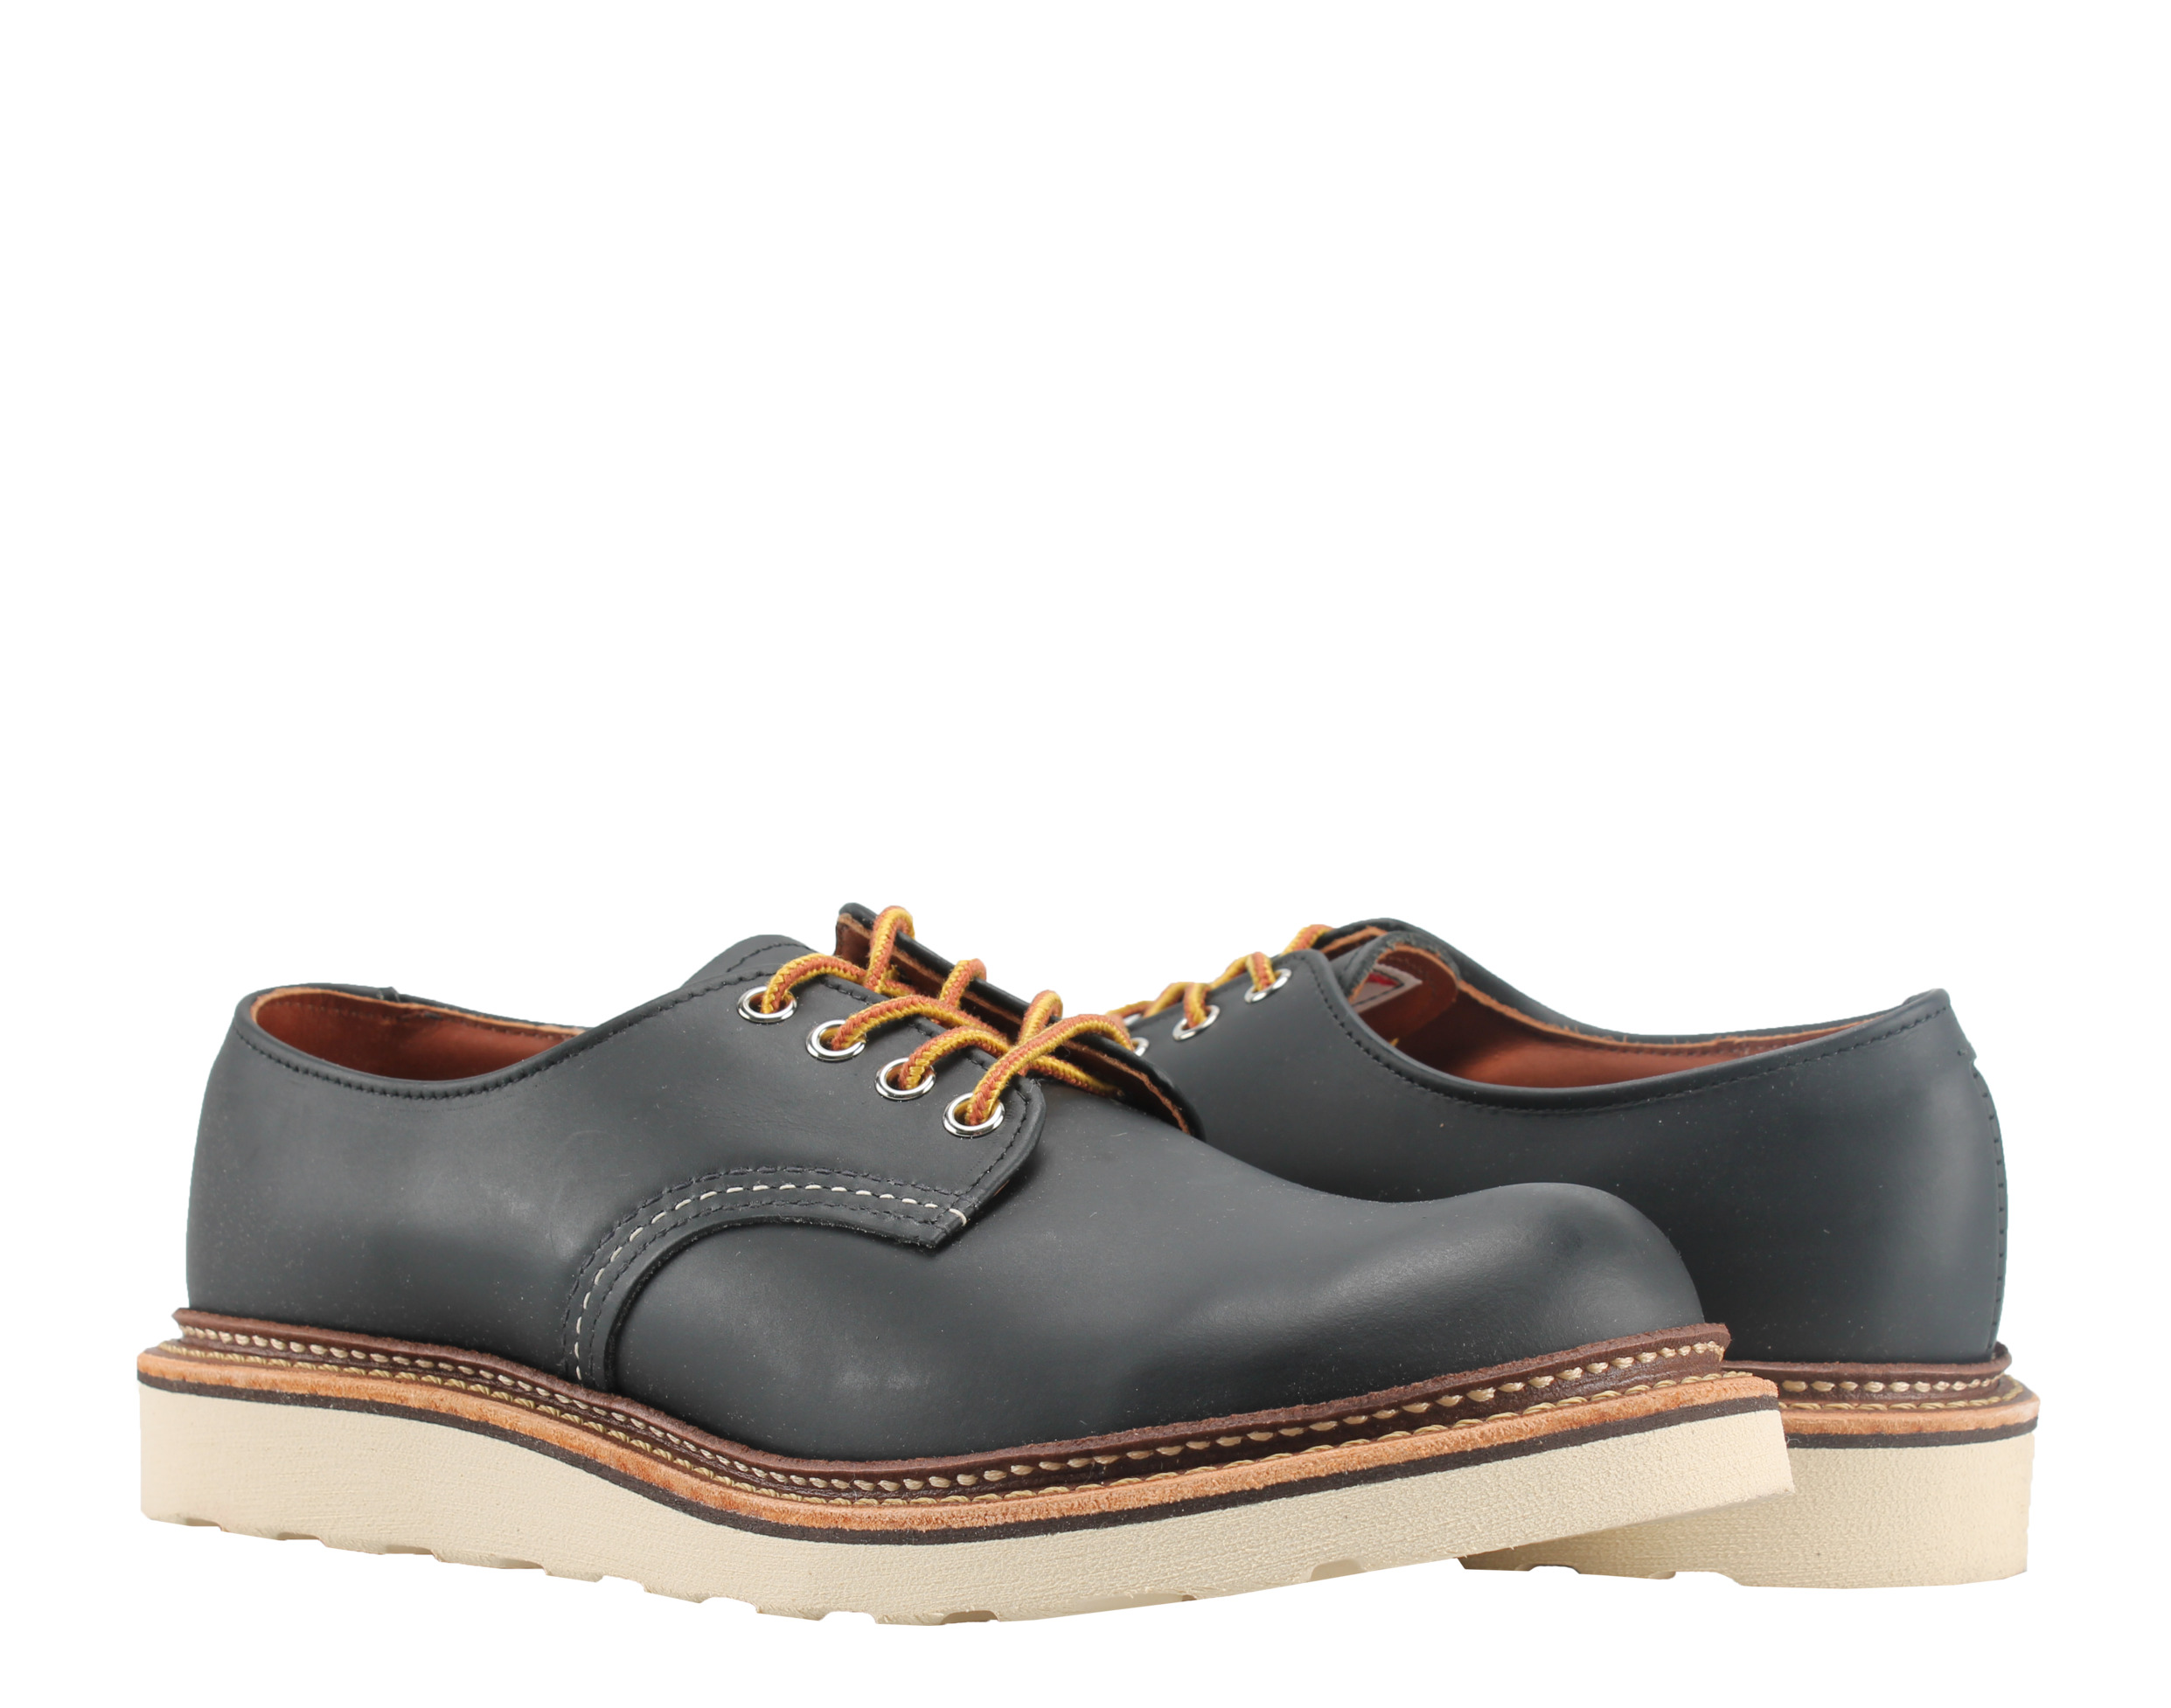 Red Wing - Red Wing Heritage 8002 Work